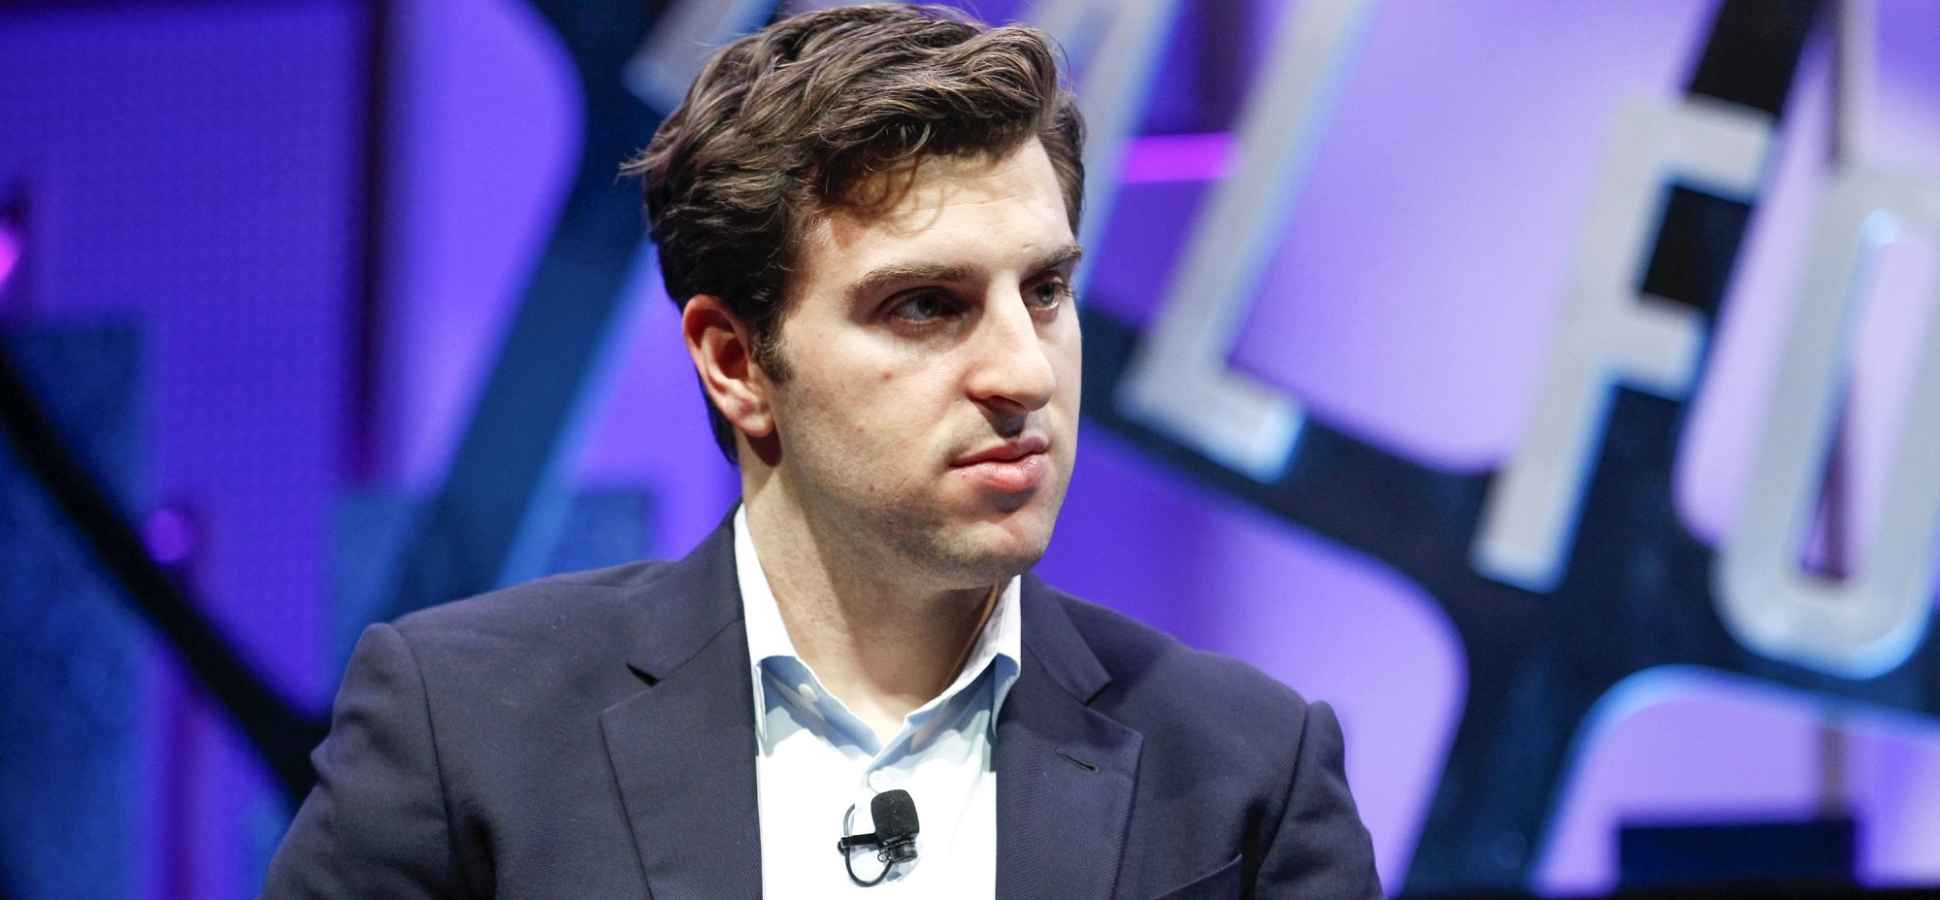 Airbnb's Brian Chesky: If 100 People Love Your Product, That's Enough